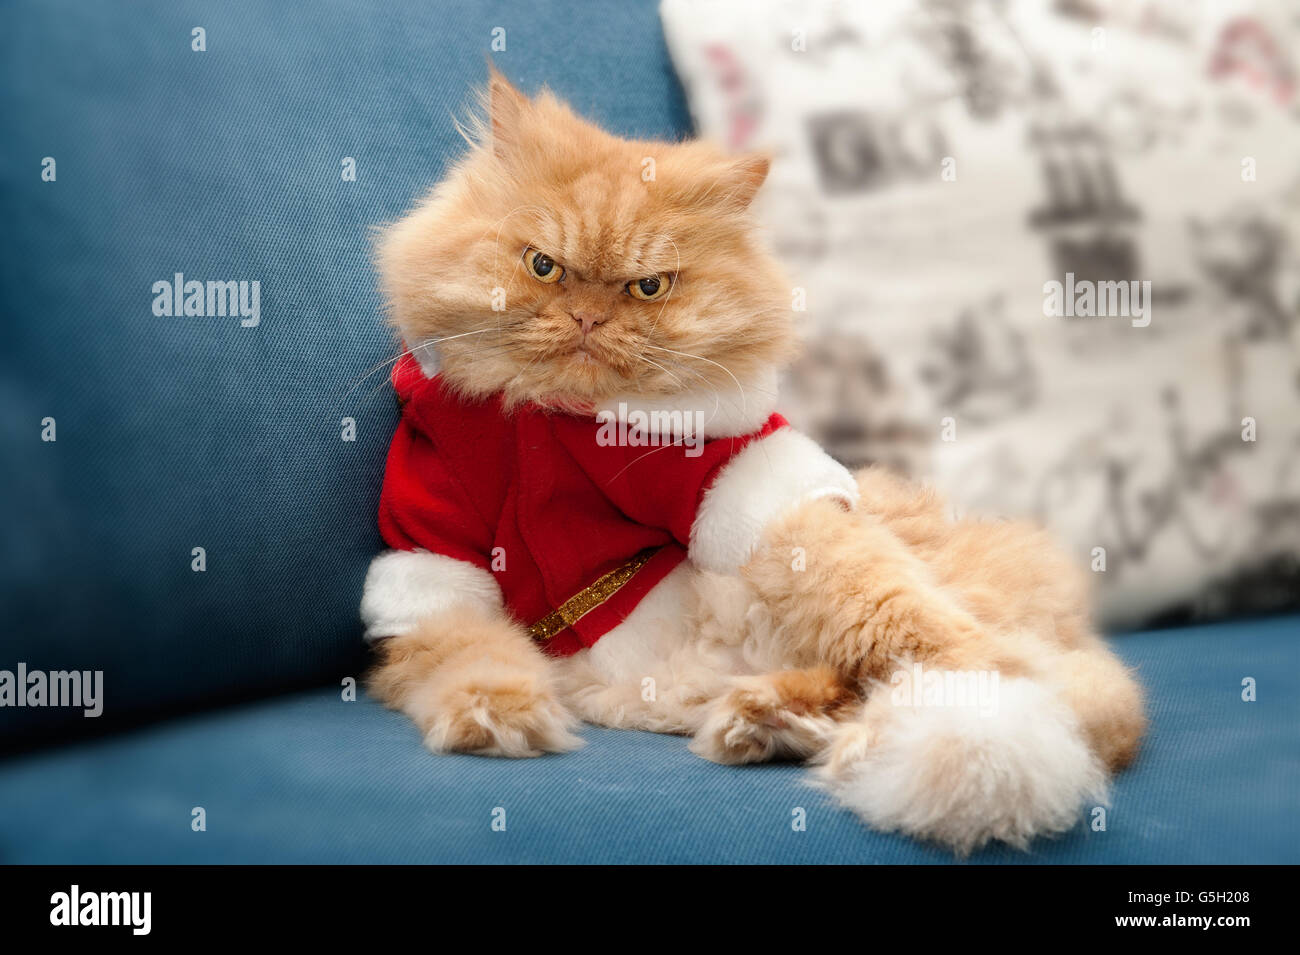 Persian cat with Santa Claus costume sitting on couch. - Stock Image